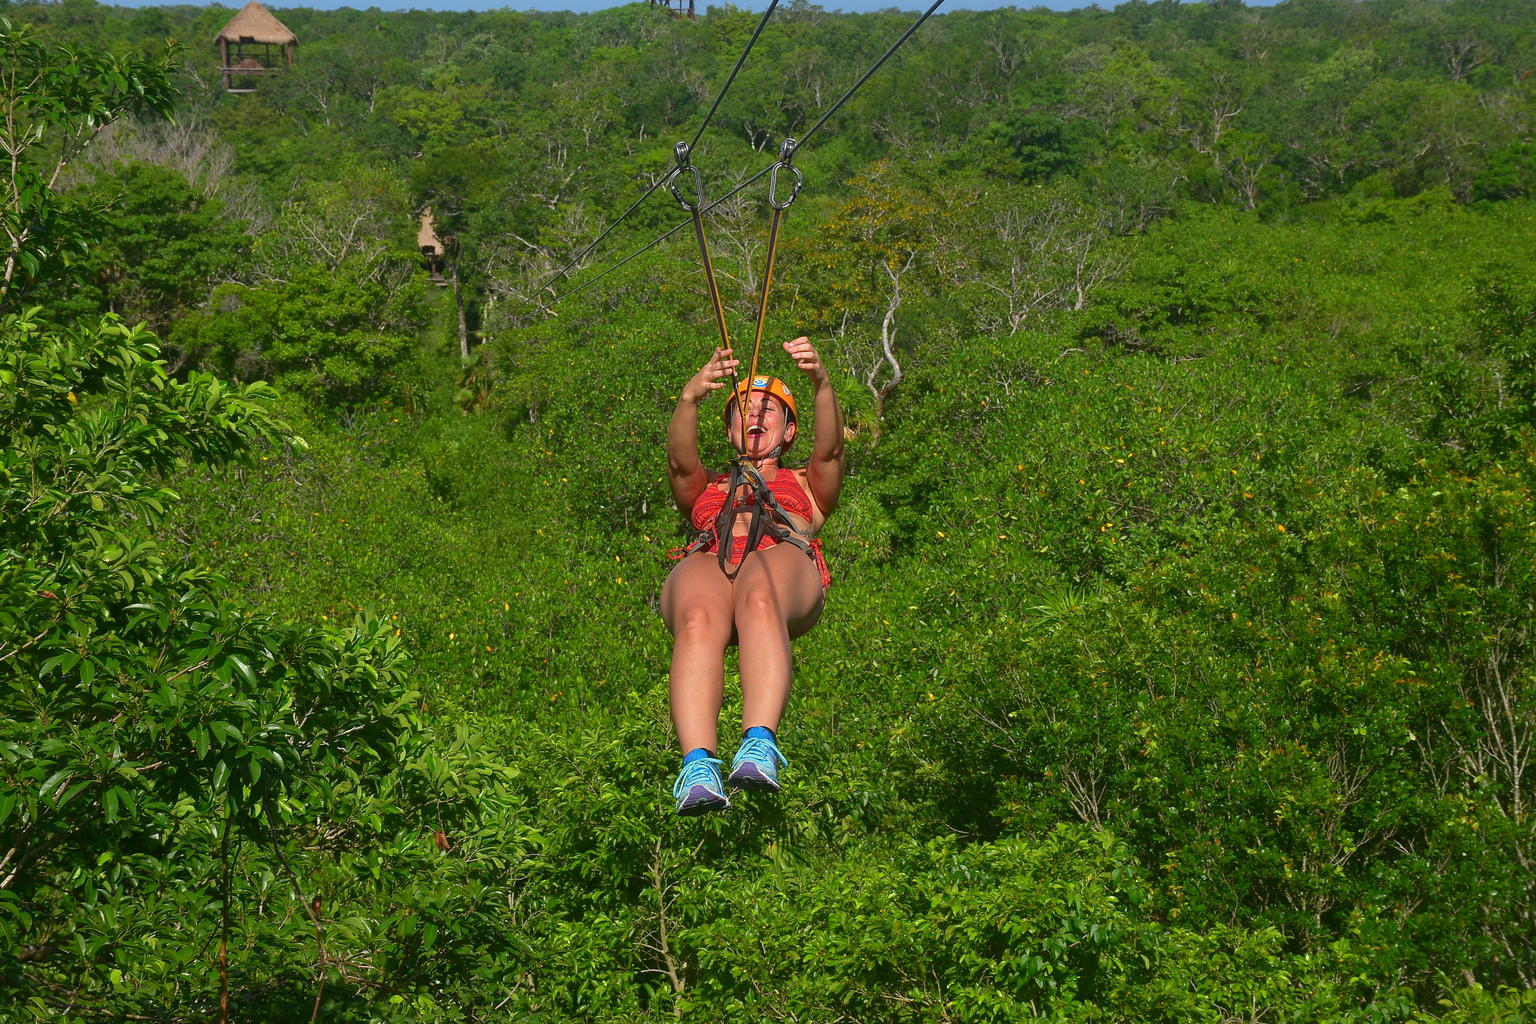 Cancun Cenote Tour: Snorkeling, Rappelling and Ziplining